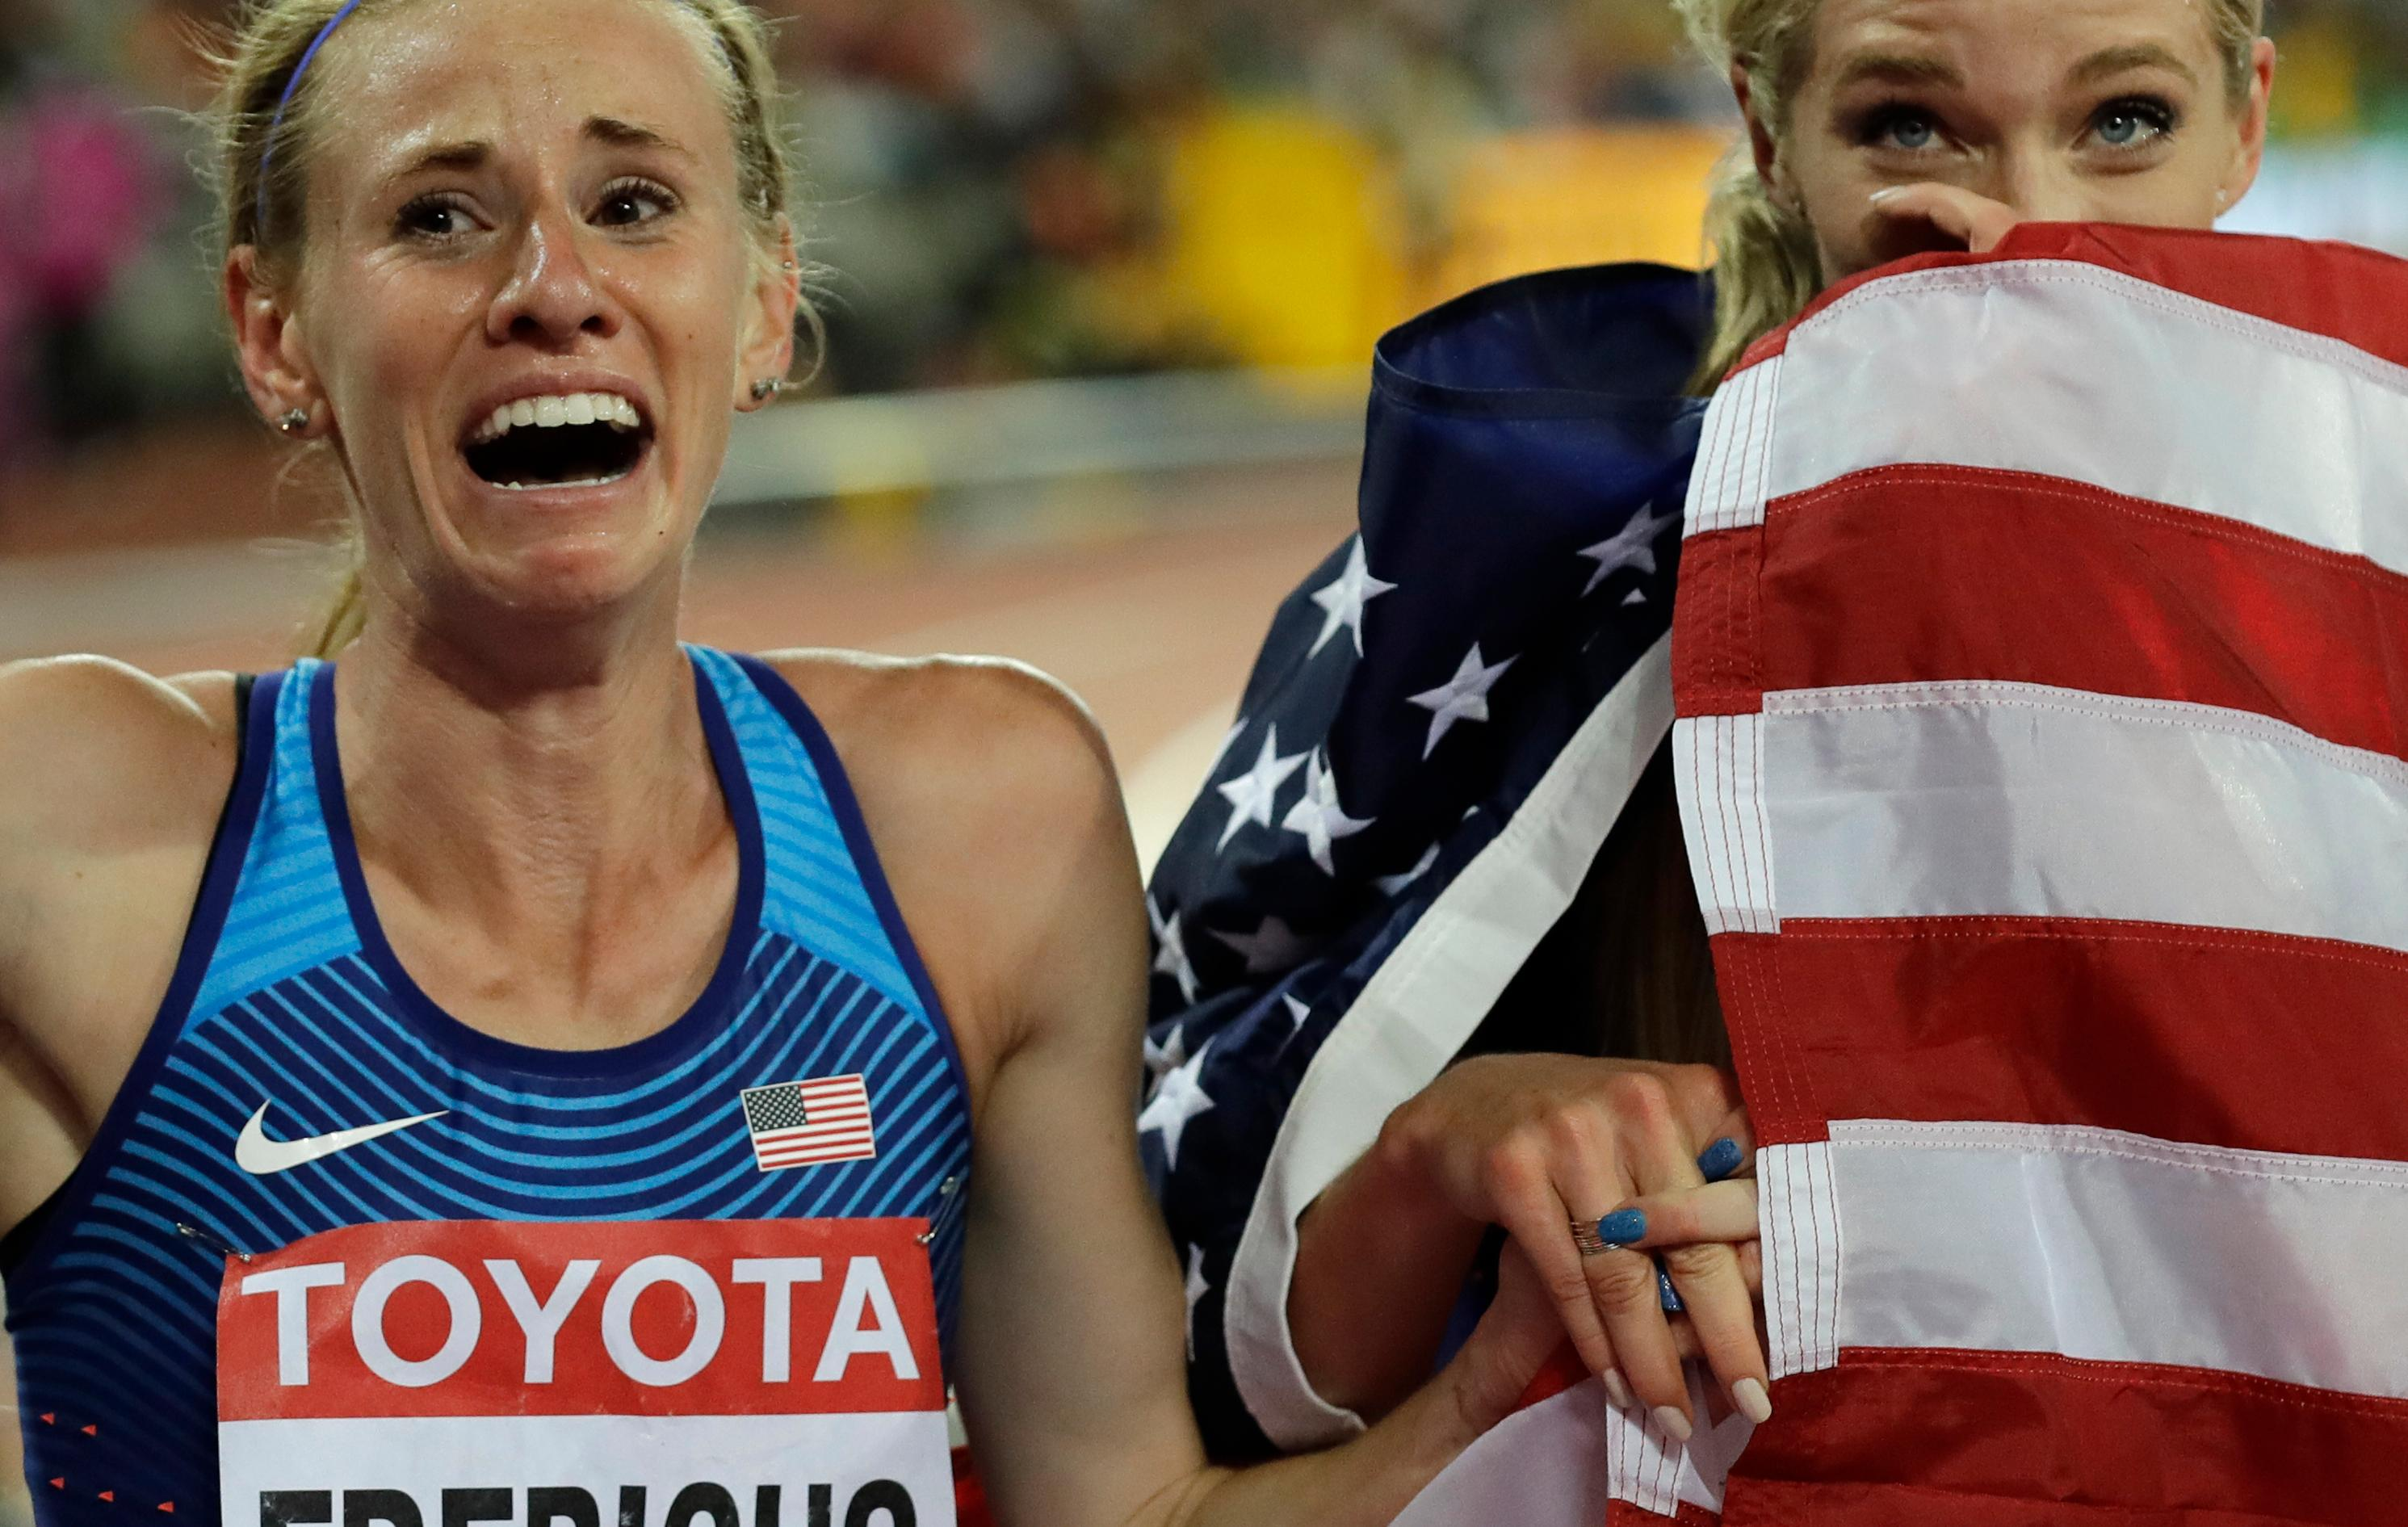 United States' Emma Coburn, right, celebrates with second placed United States' Courtney Frerichs, left, after winning the Women's 3000 meter steeplechase final during the World Athletics Championships in London Friday, Aug. 11, 2017. (AP Photo/Tim Ireland)